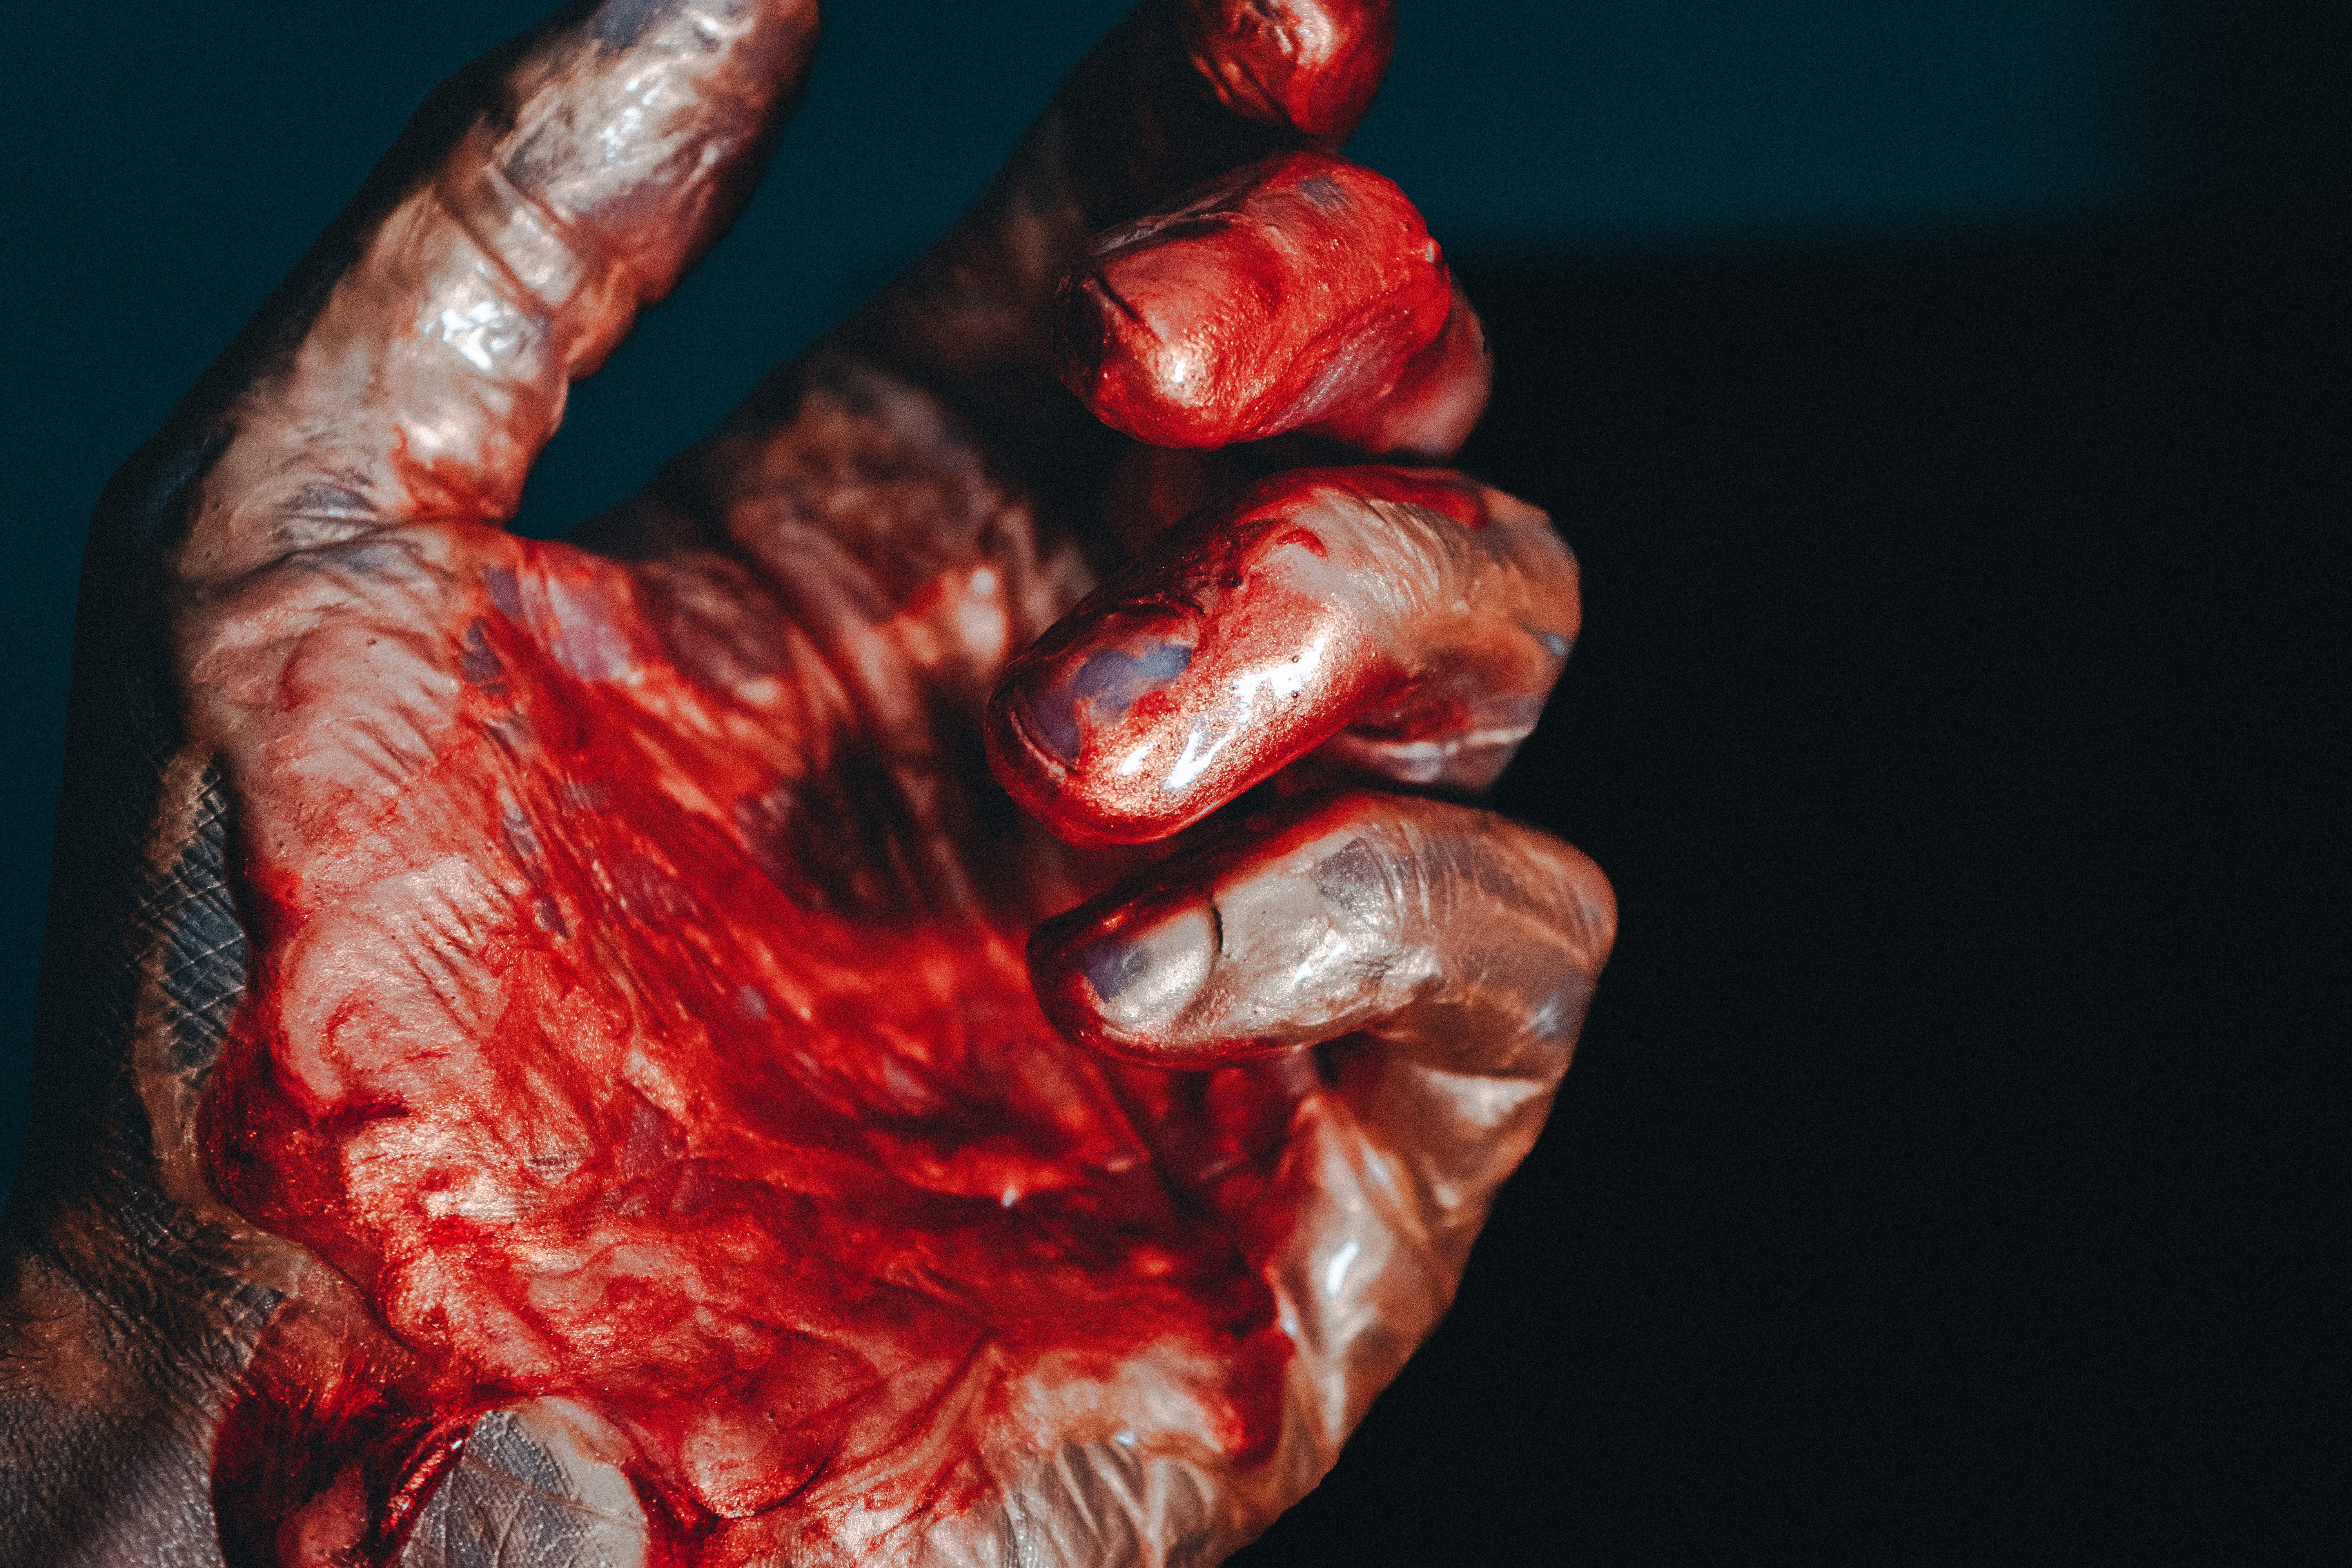 Hear the Most Gruesome Crime Podcasts That Will Grip Your Ears